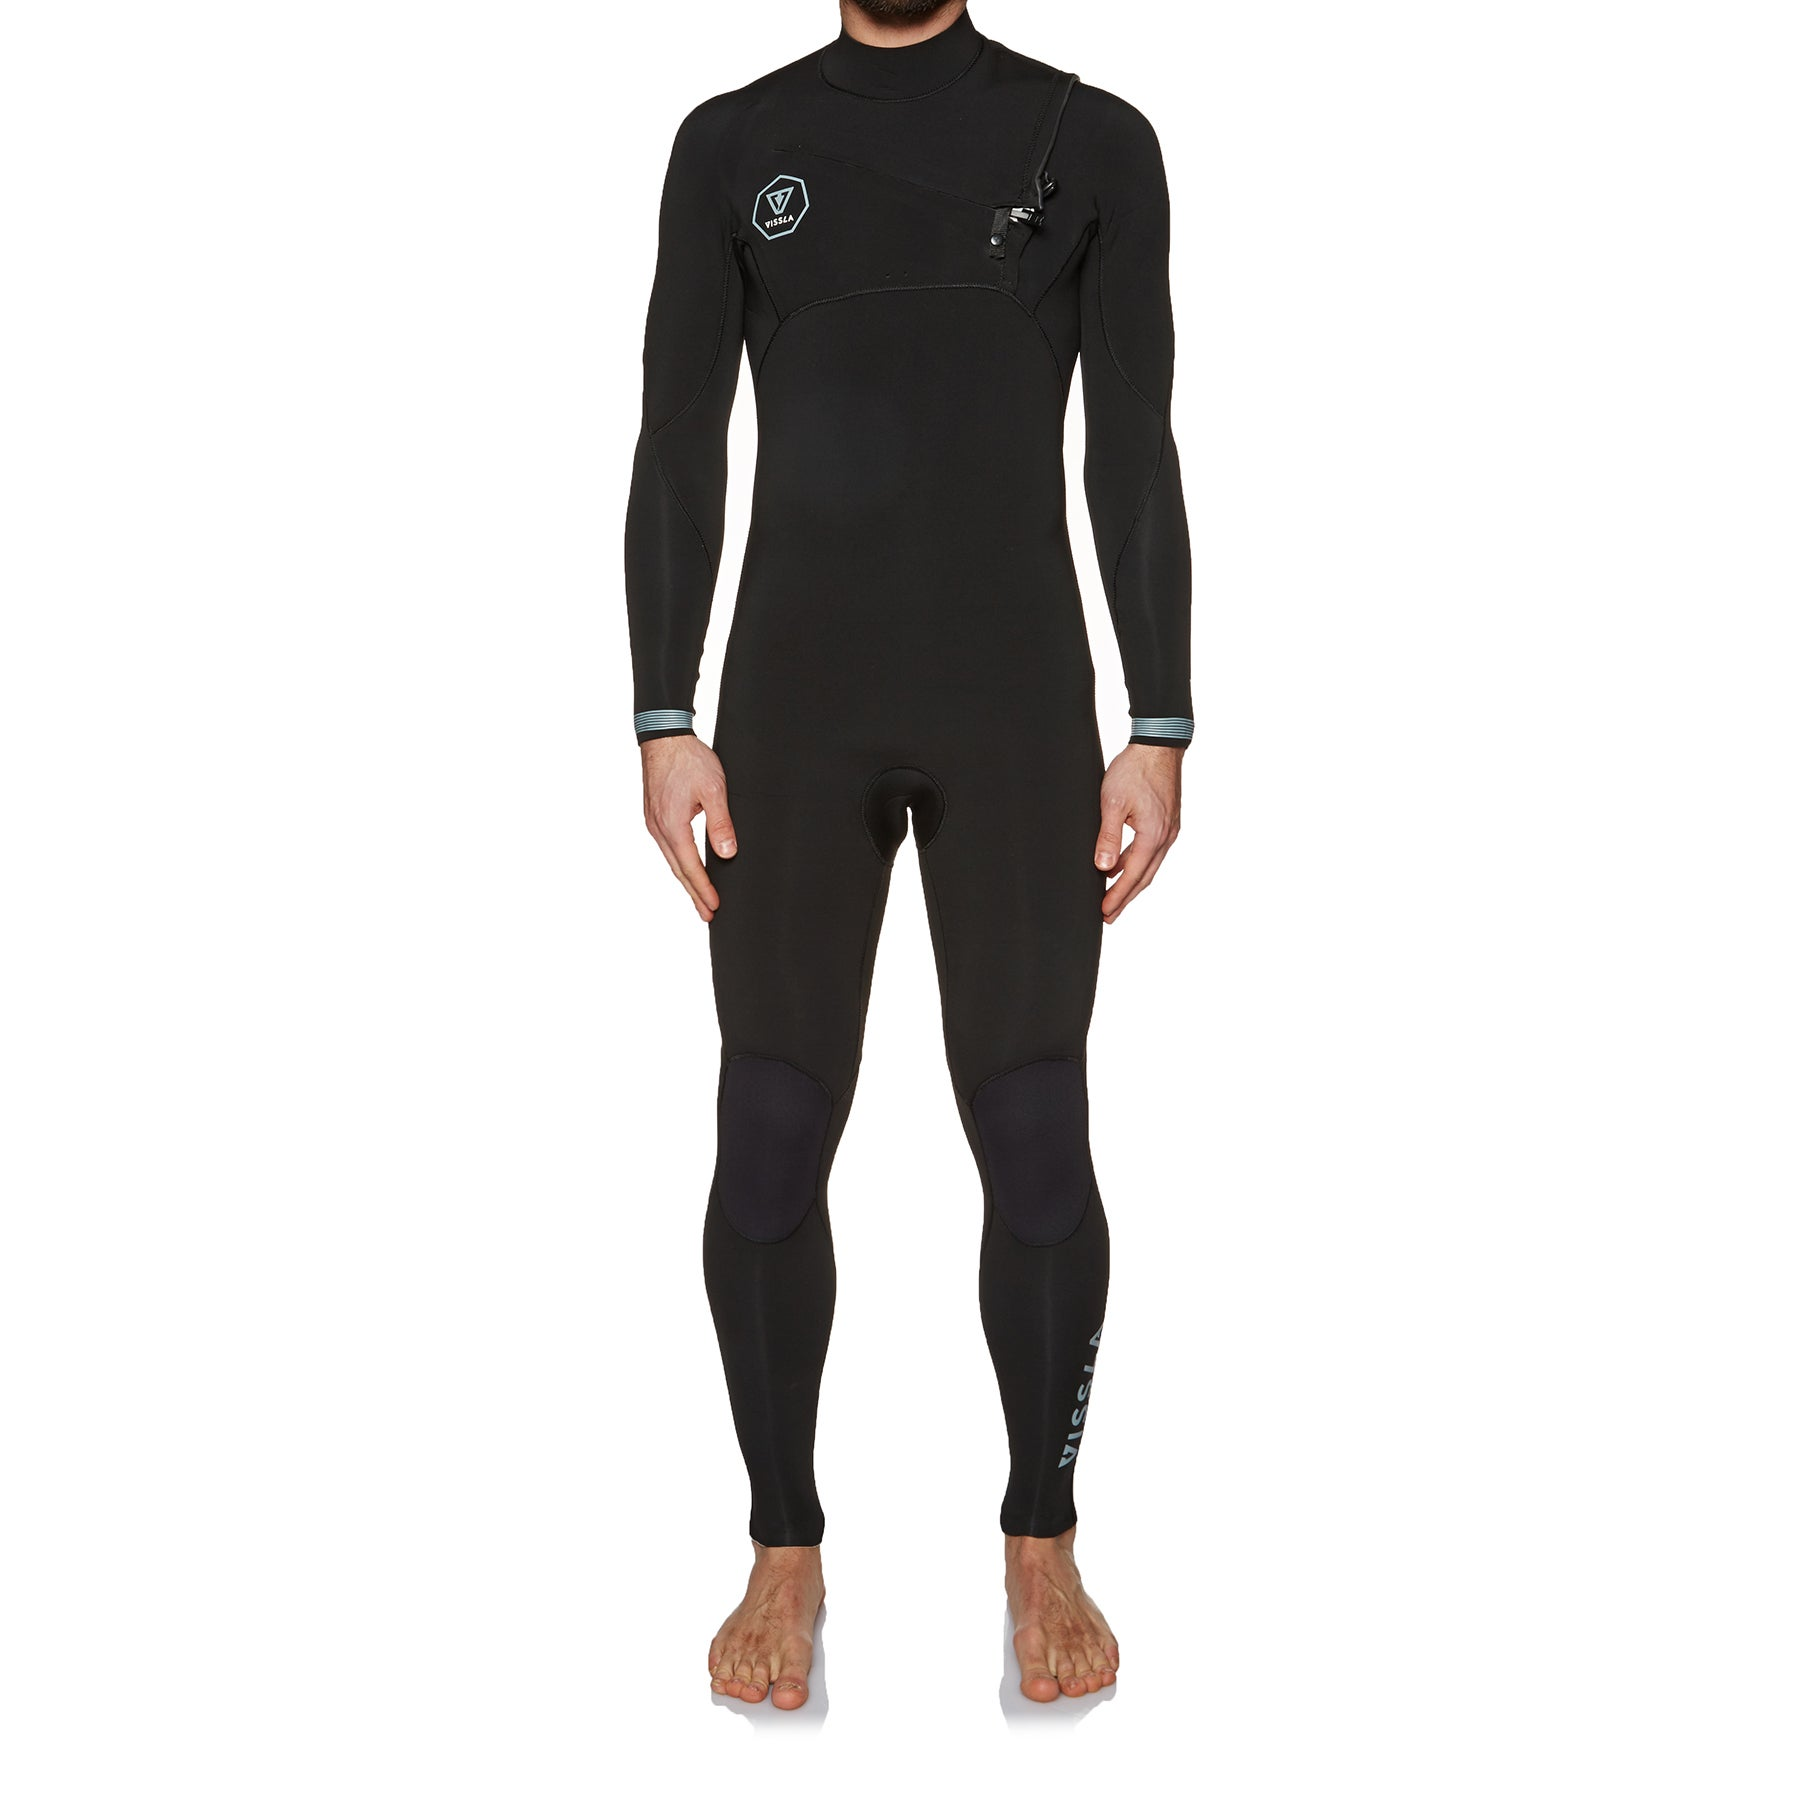 Vissla 7 Seas 2mm 2018 Chest Zip Wetsuit - Black Fade